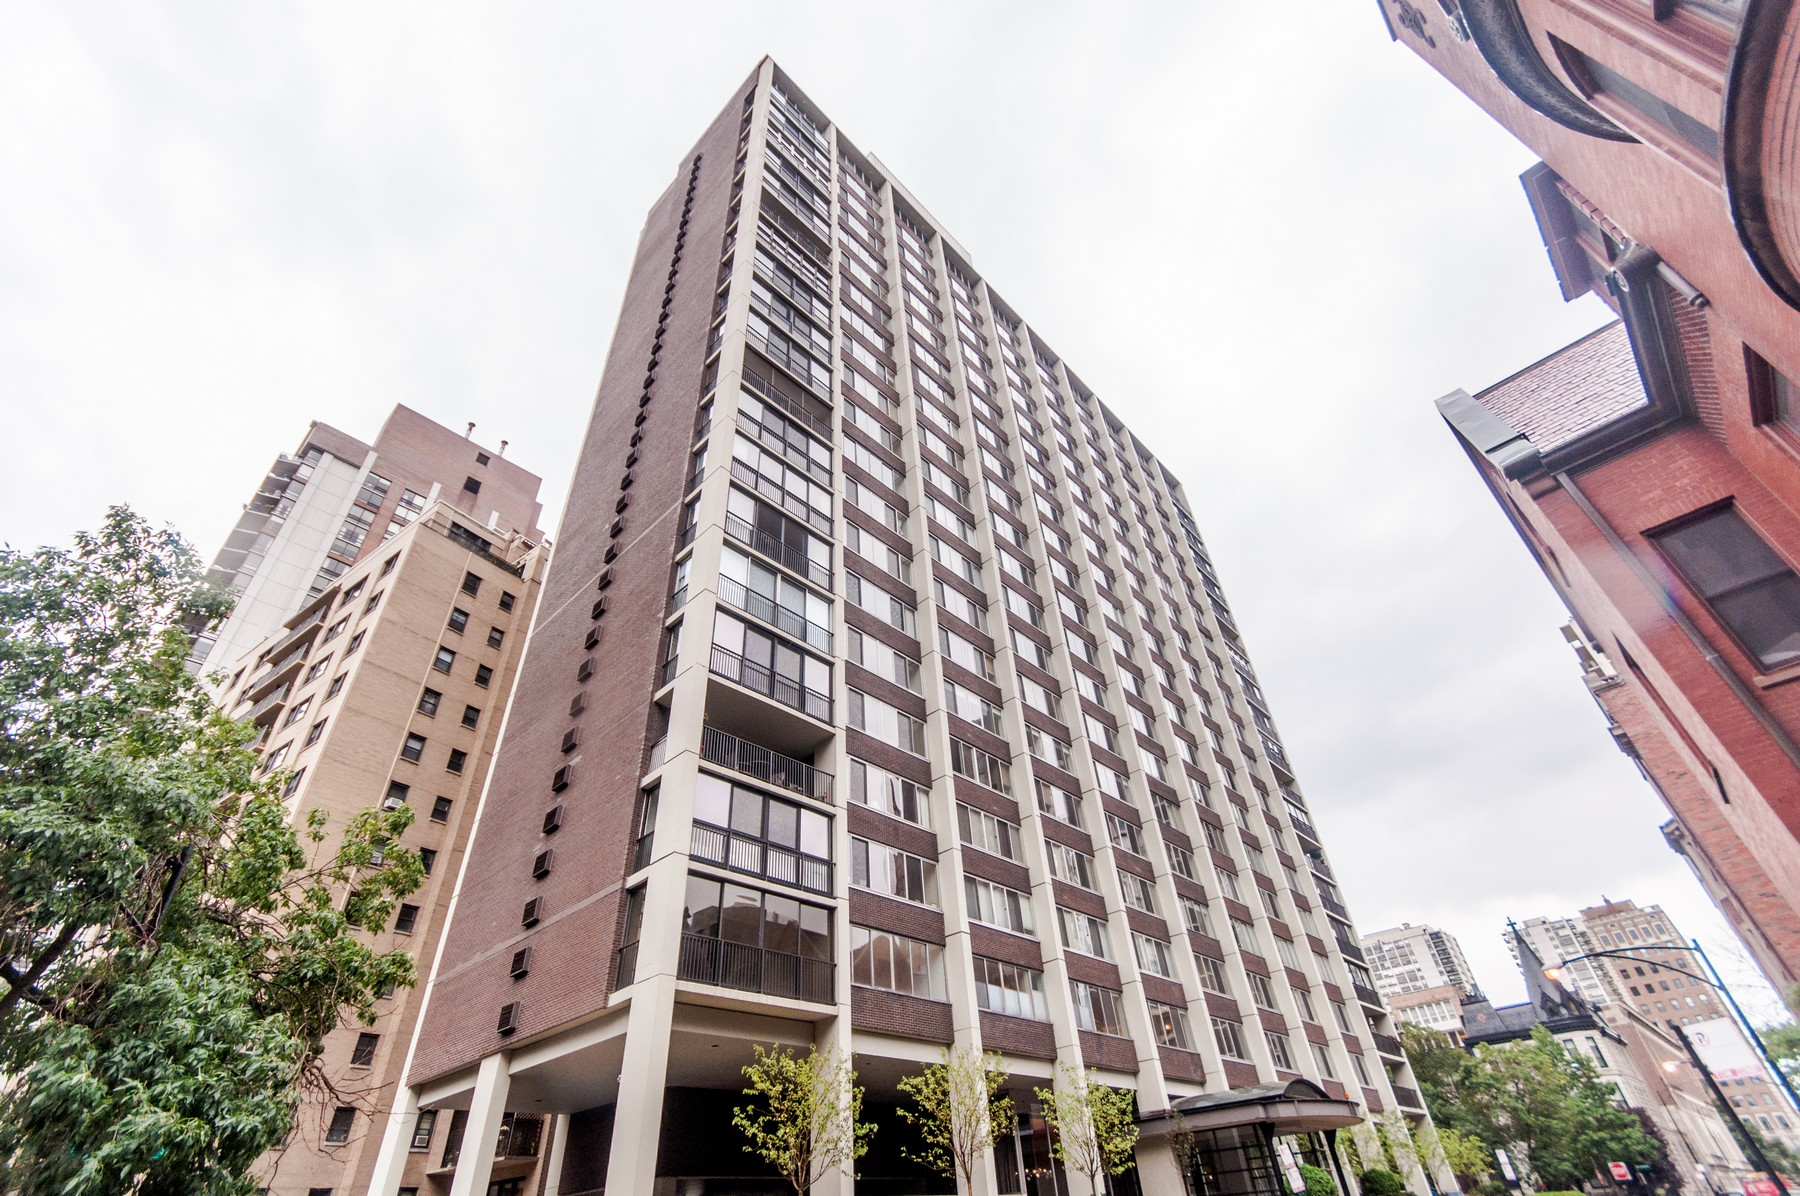 Condomínio para Venda às Updated Gold Coast Condo 1 E Schiller Street Unit 3B Near North Side, Chicago, Illinois, 60610 Estados Unidos